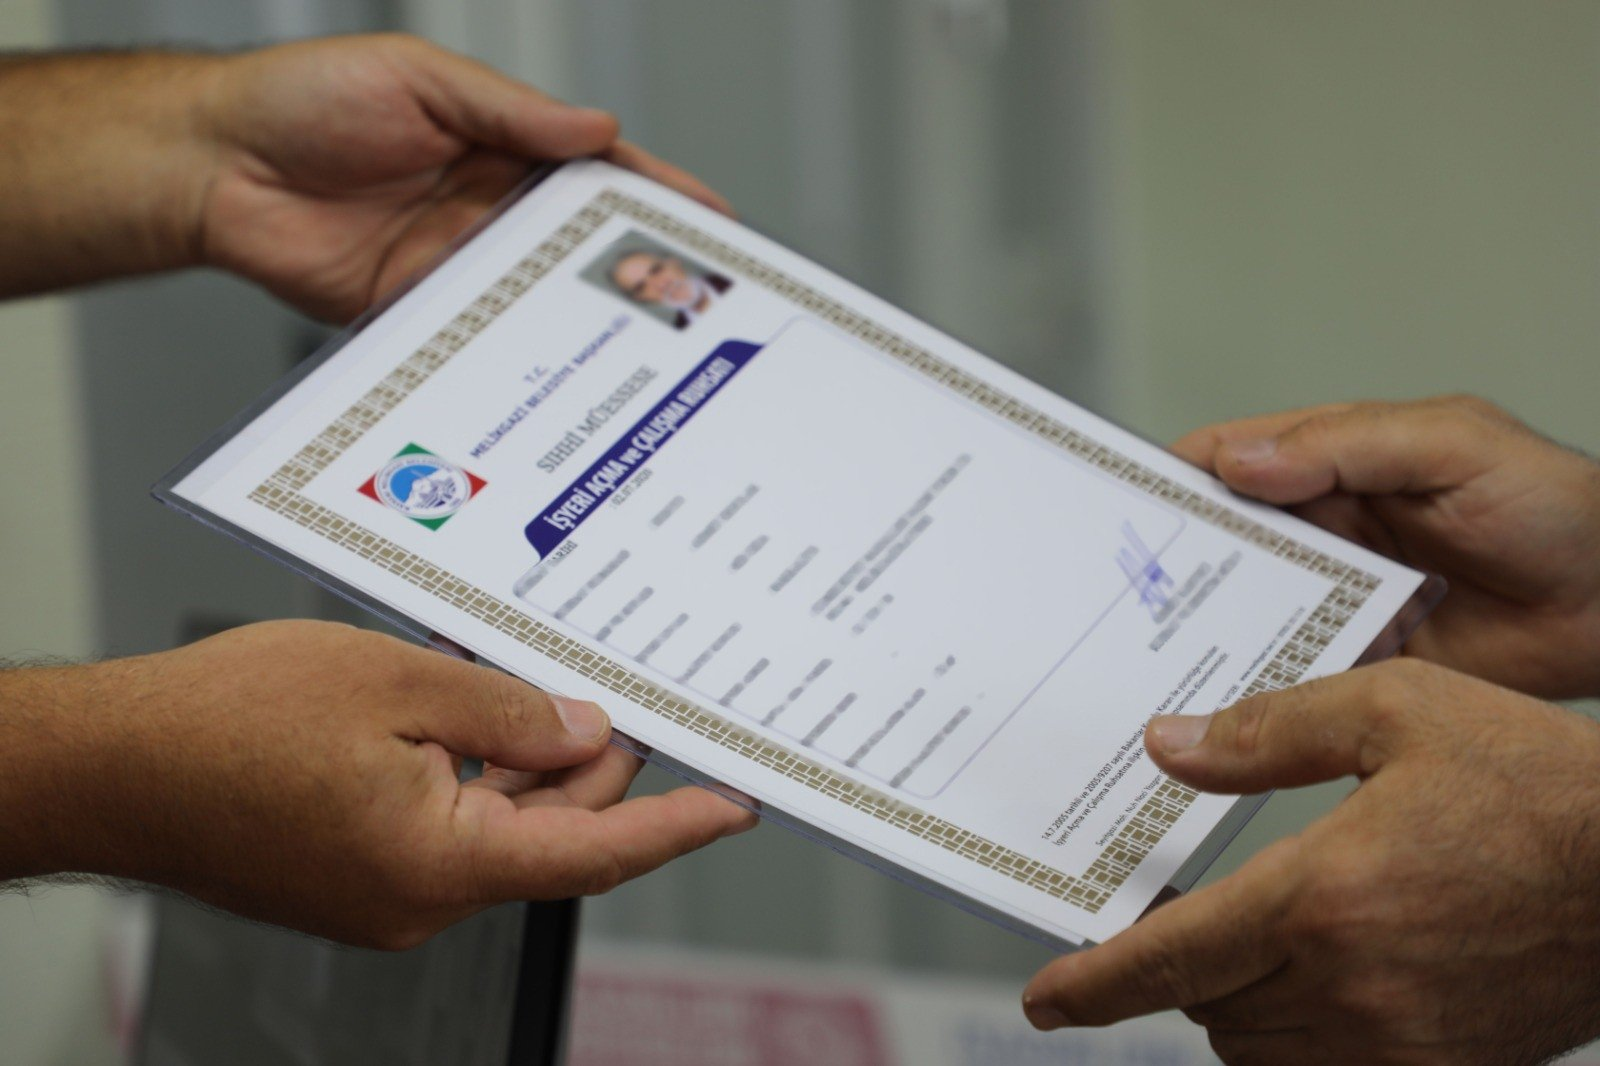 A man hands another person a license to open a workplace in Melikgazi, Konya province, central Turkey, Oct. 12, 2020. (IHA Photo)